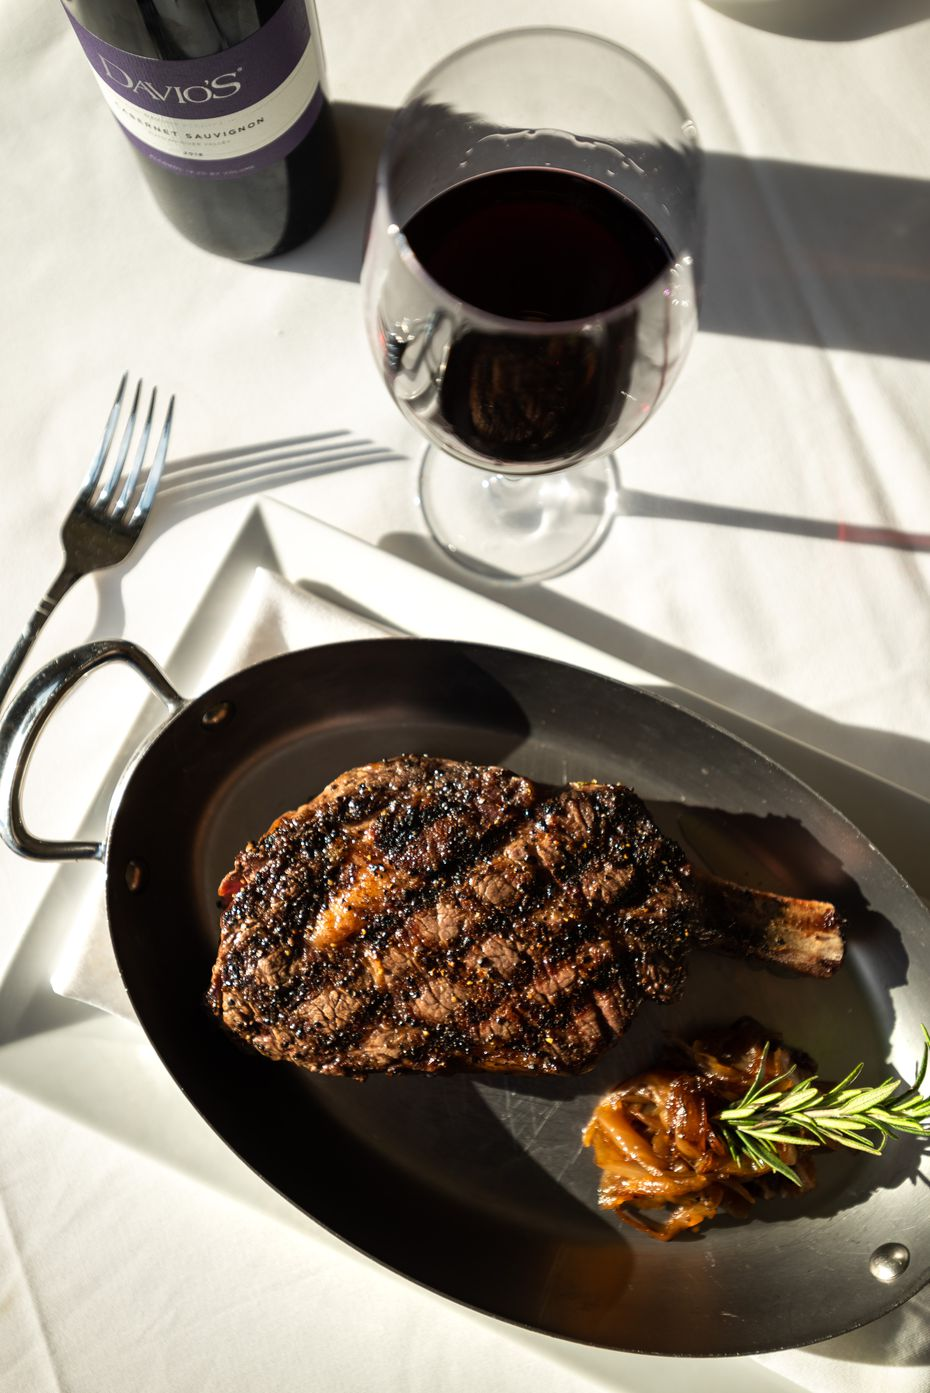 Davio's is a Northern Italian steakhouse that seems right for a special evening with your sweetheart.